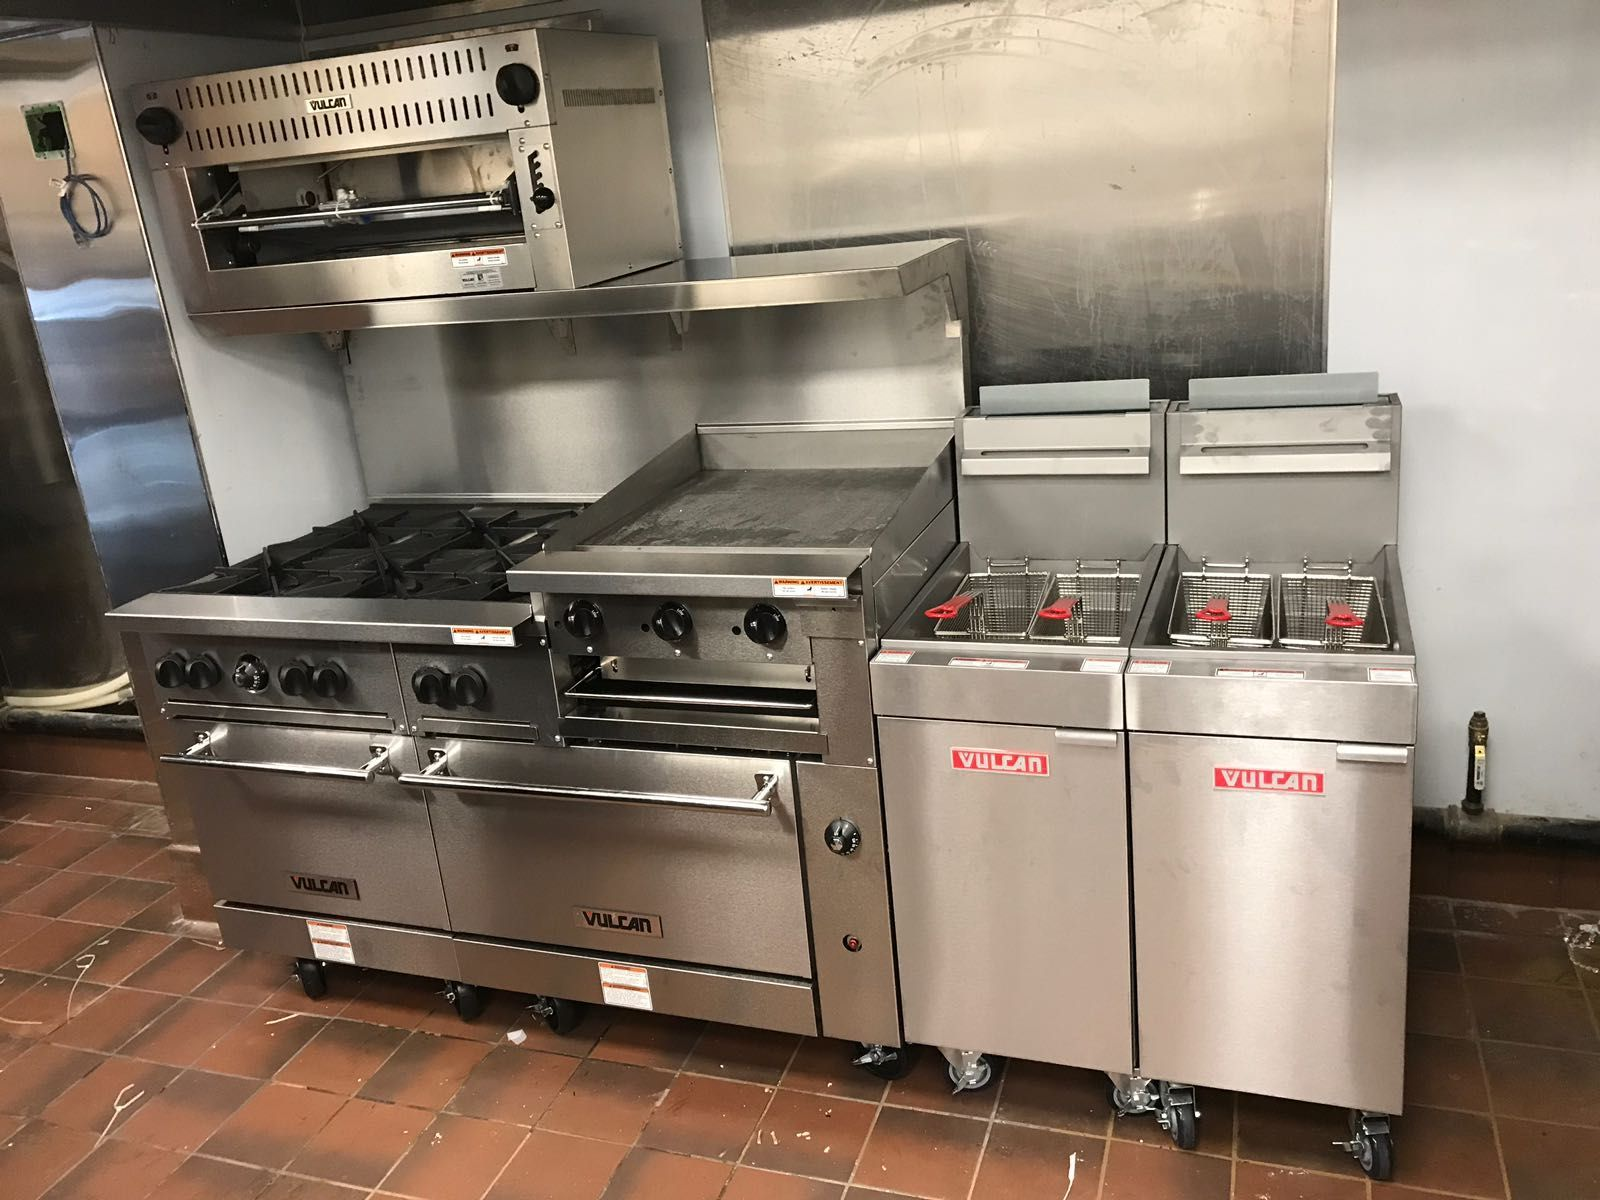 vulcan kitchen storage carts love equipment we carry ranges griddles fryers cheesemelters and much more culinarydepot commercialkitchen cooking chef